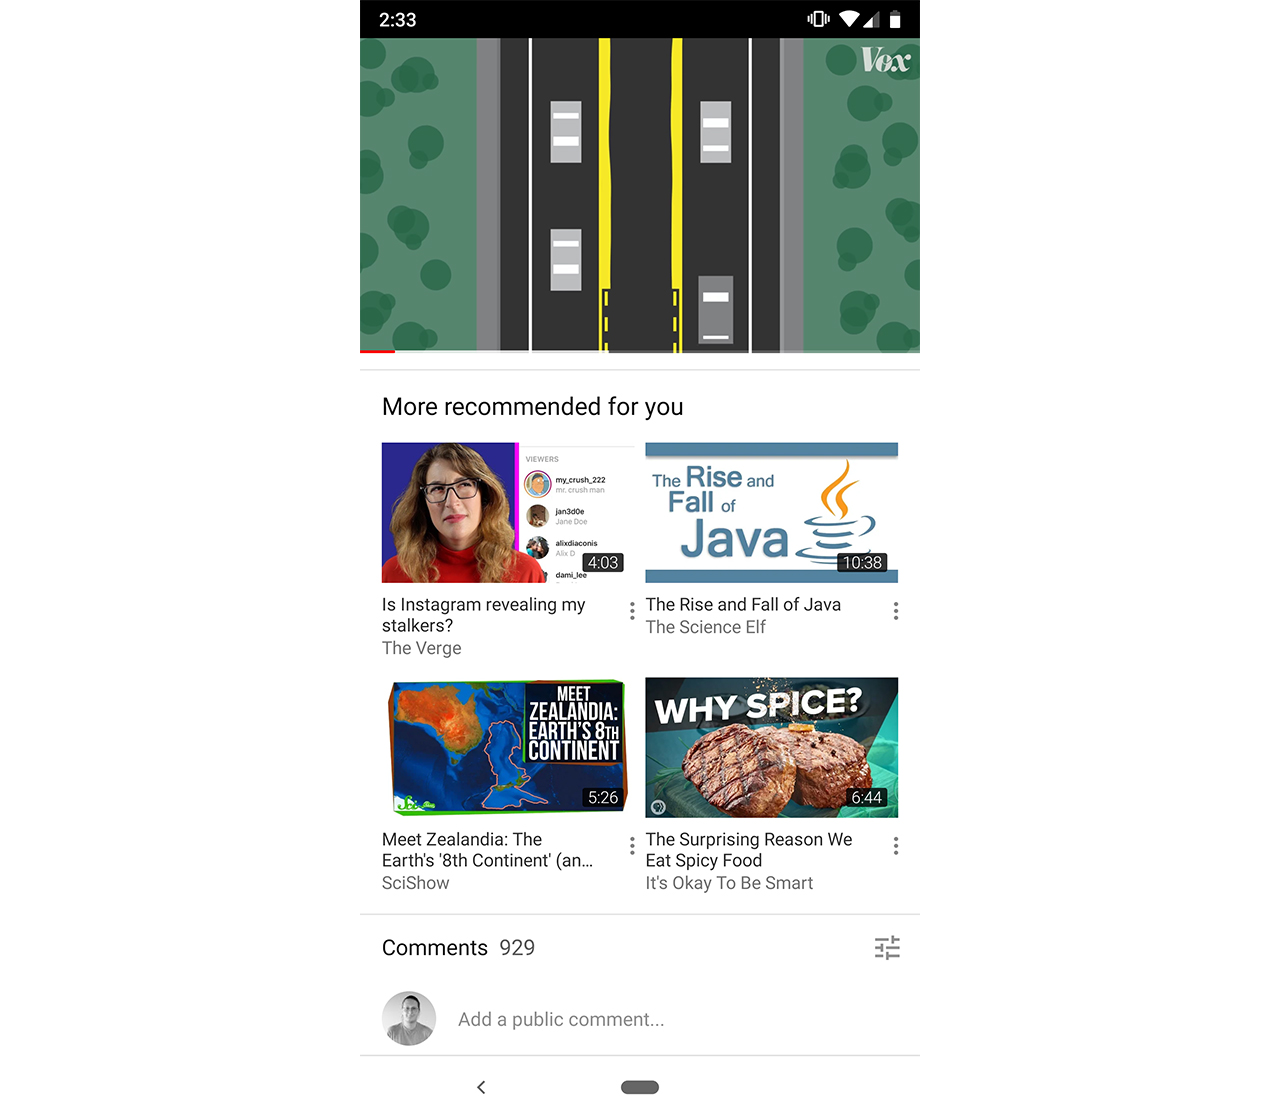 YouTube update breaks seek bar, adds new recommended section